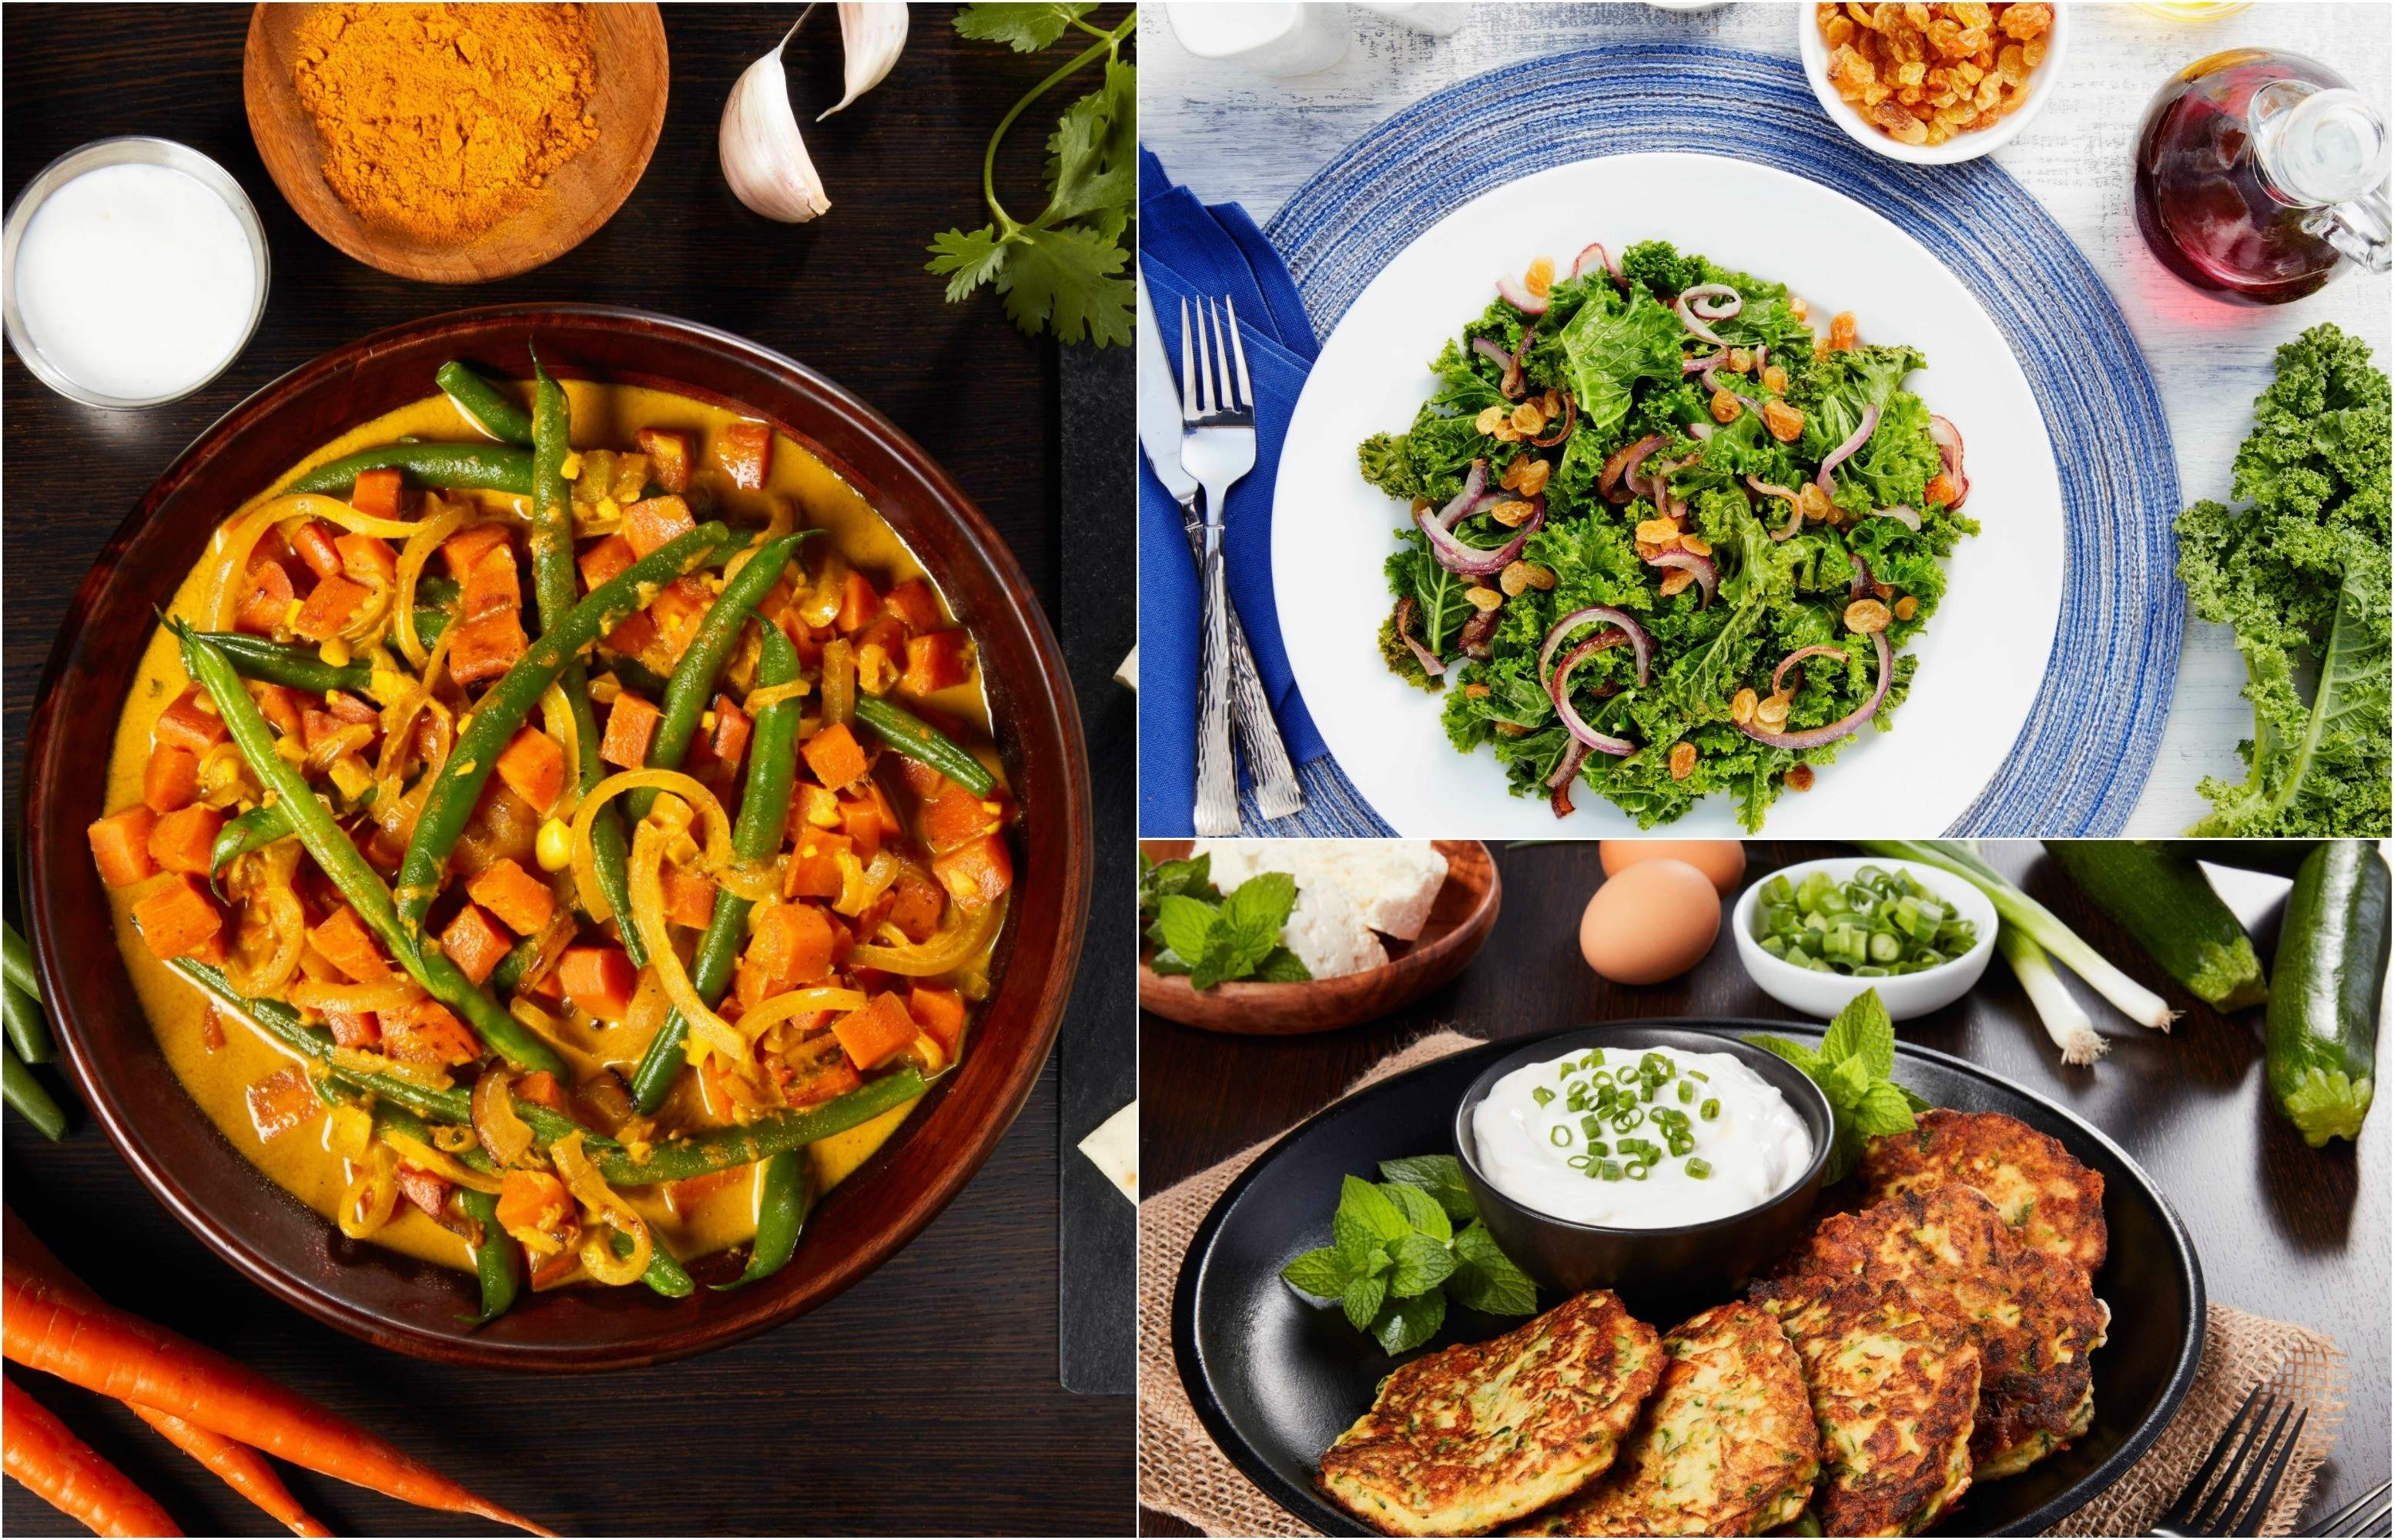 Try these easy vegetable recipes this back-to-school season